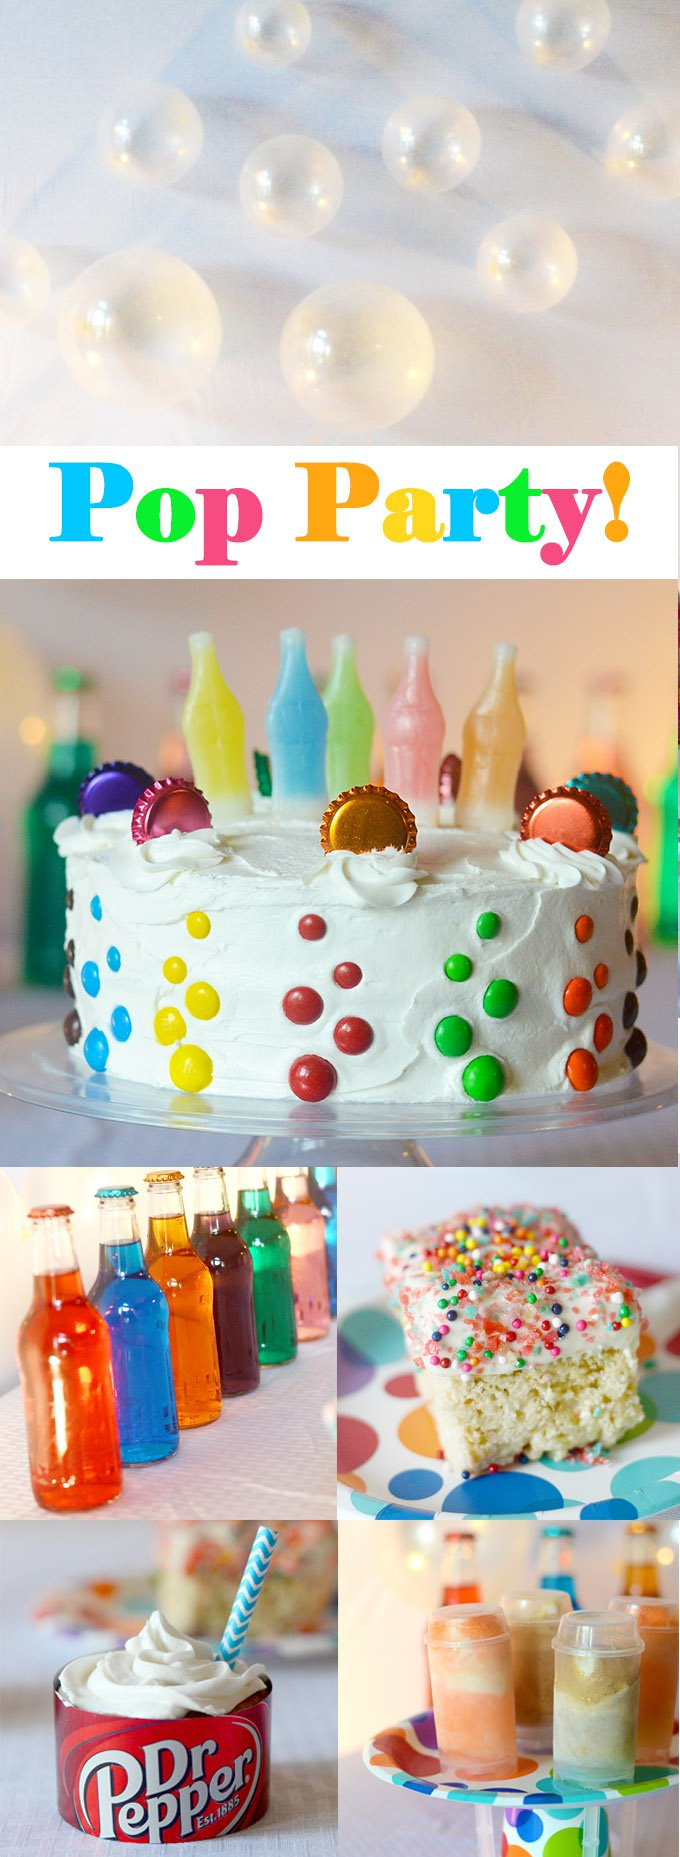 boy and girl birthday party themes ; Pop-Party-Soda-Pop-themed-party-perfect-for-boys-or-girls-All-the-treats-are-made-with-some-kind-of-Pop-Too-Cute4